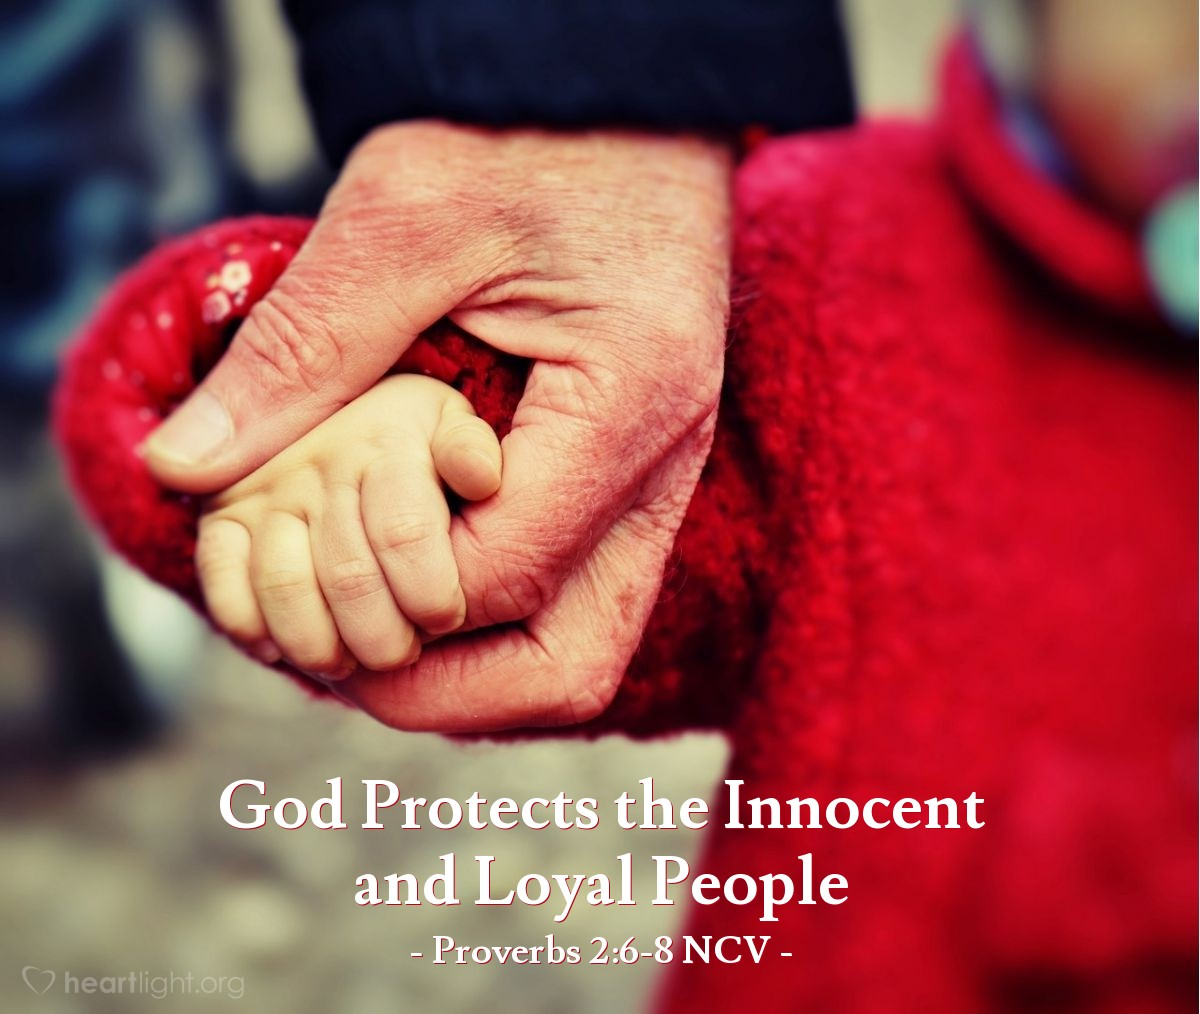 Illustration of Proverbs 2:6-8 NCV — Only the Lord gives wisdom; he gives knowledge and understanding. He stores up wisdom for those who are honest. Like a shield he protects the innocent. He makes sure that justice is done, and he protects those who are loyal to him.